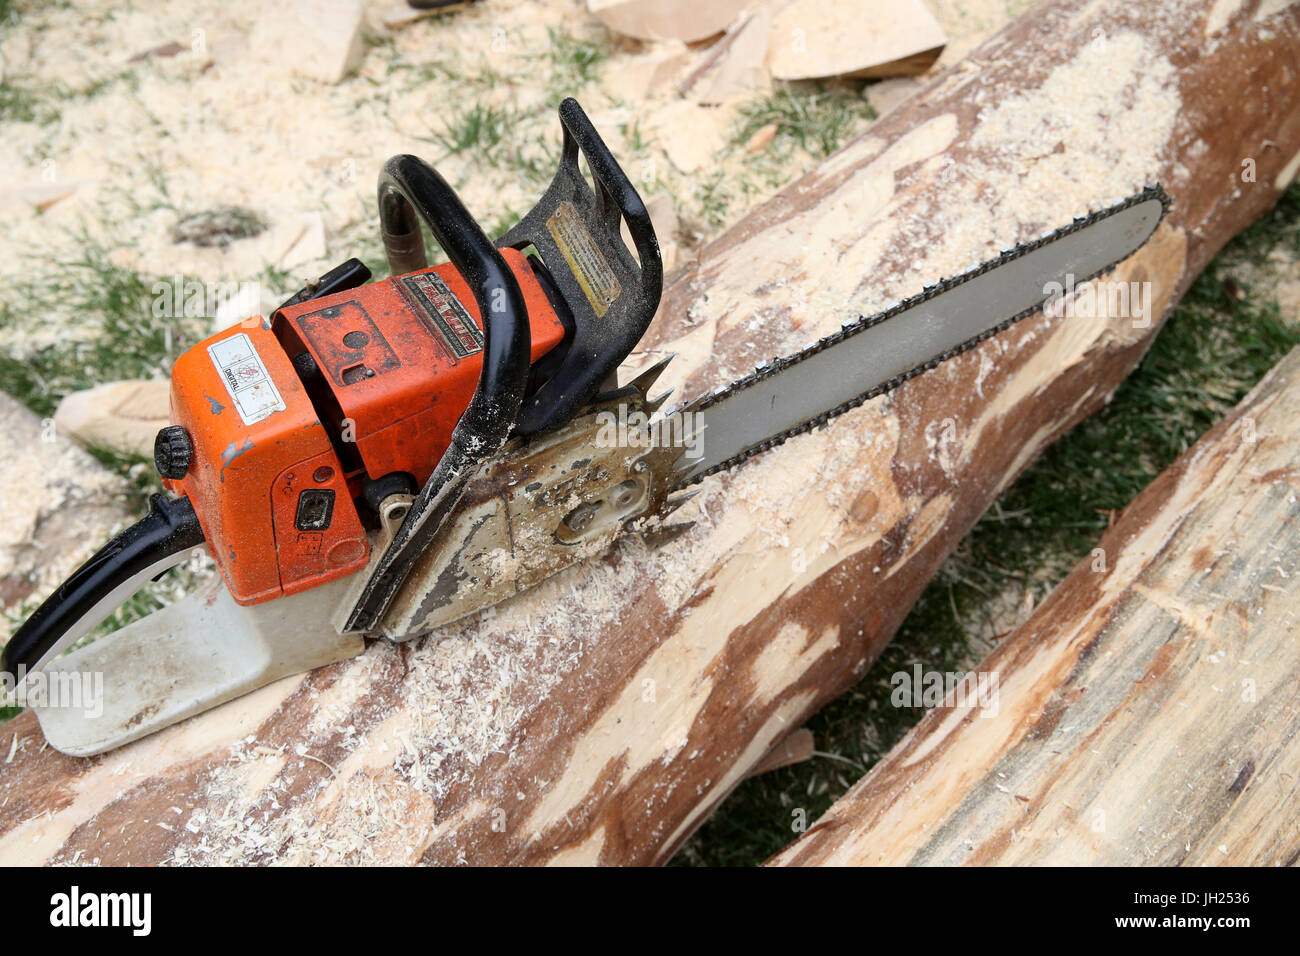 Chainsaw with cut log. France. - Stock Image